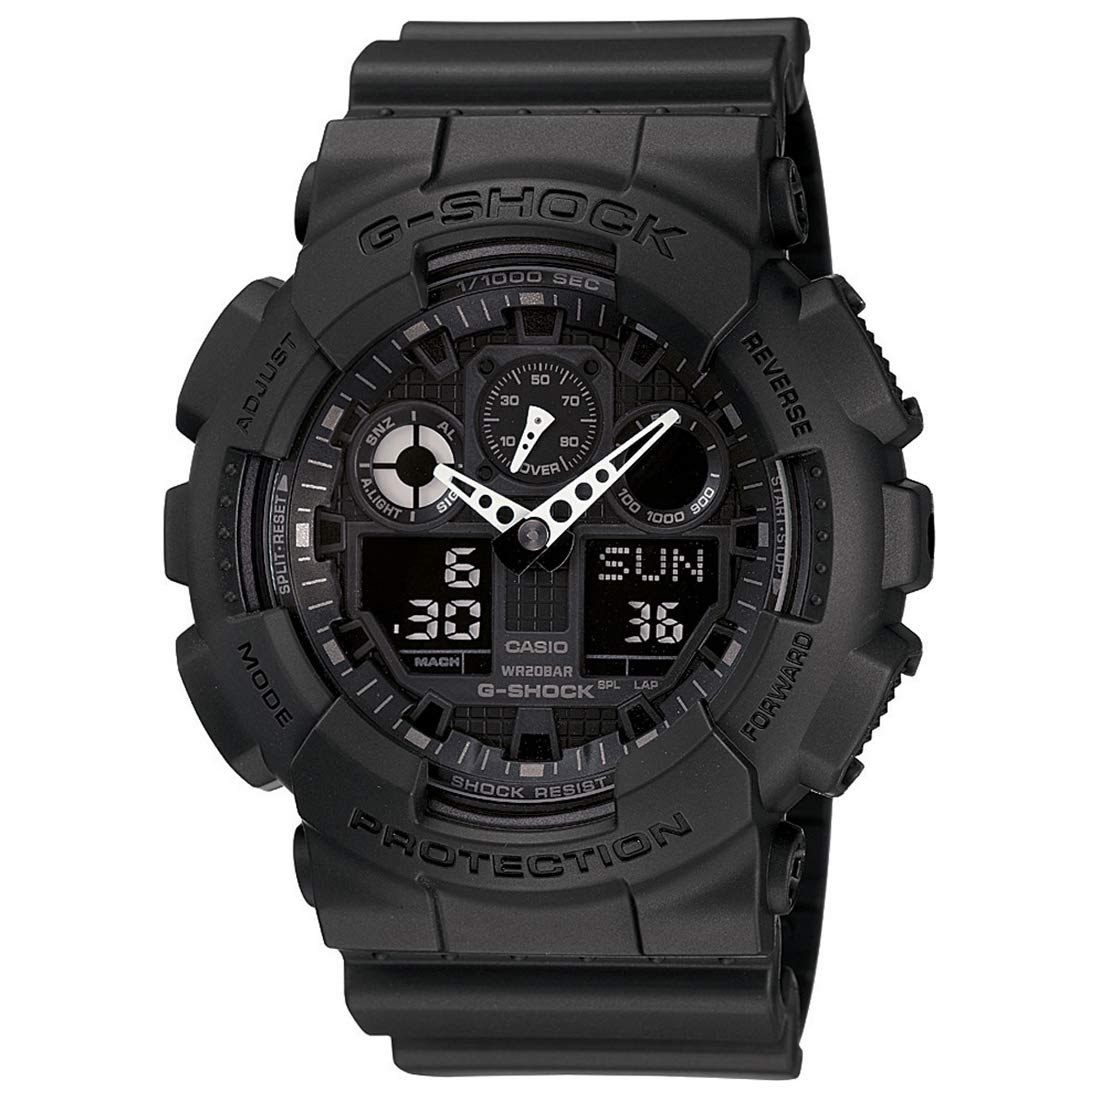 61e6f698fdb Buy Casio G-Shock Analog-Digital Black Dial Men s Watch - GA-100-1A1DR  (G270) Online at Low Prices in India - Amazon.in